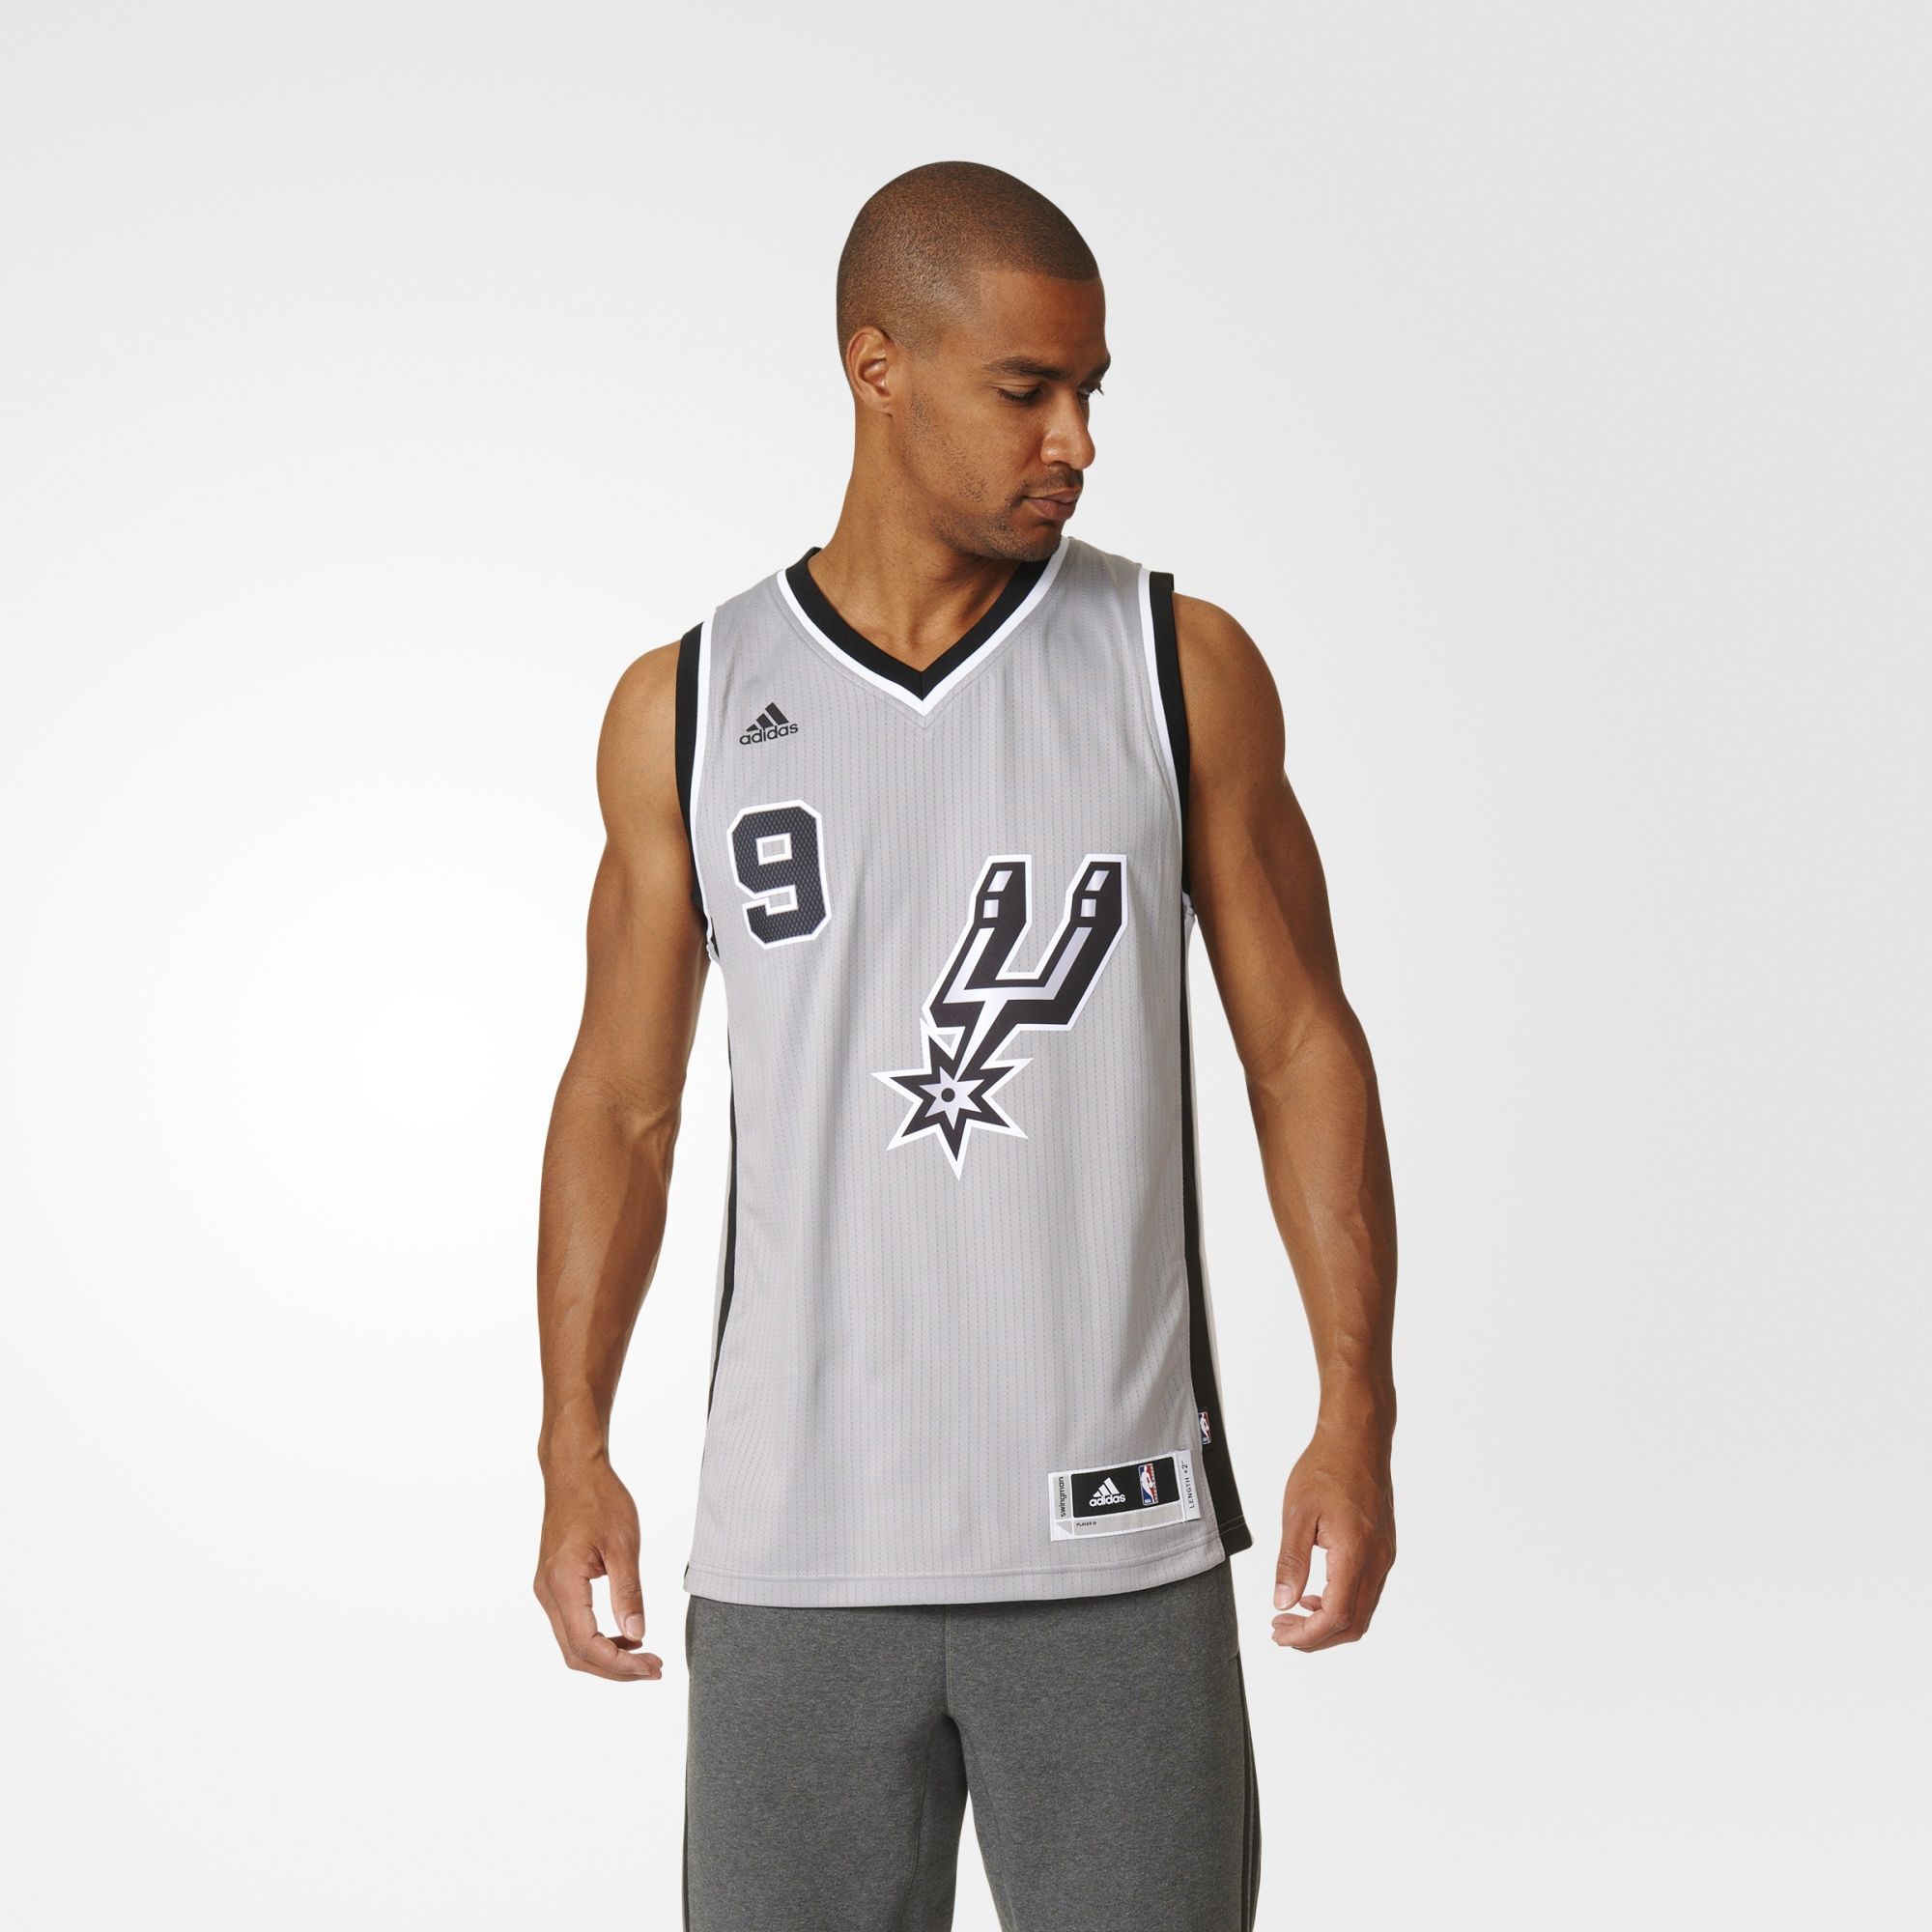 17976a186ad adidas NBA San Antonio Spurs Tony Parker Swingman Jersey - NBA Shop San  Antonio Spurs Merchandise - Superfanas.lt